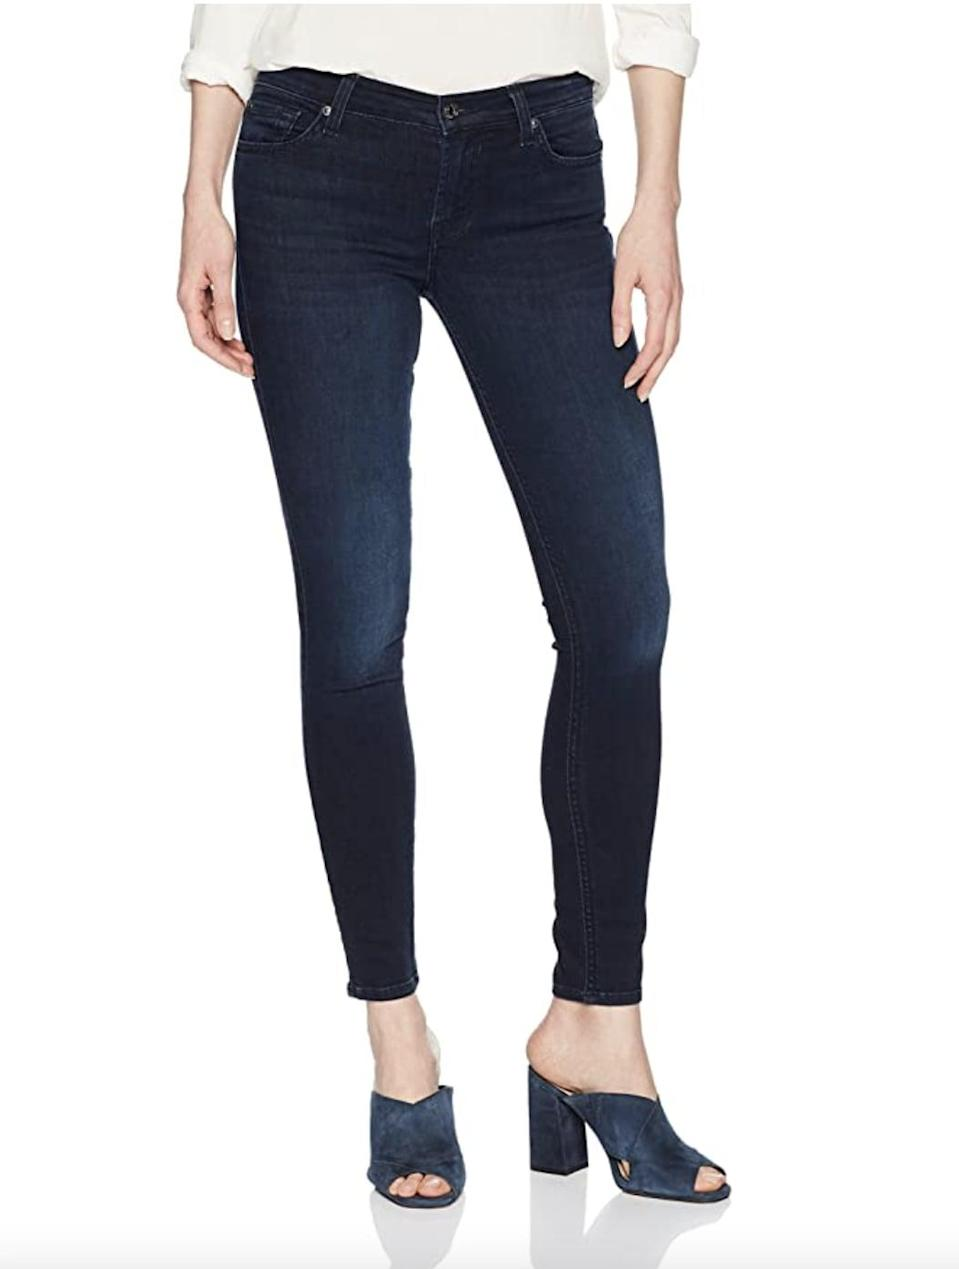 <p>If you're into low-rise pairs, get these <span>7 For All Mankind Gwenevere Ankle Skinny Mid Rise Jeans</span> ($72 - $145).</p>